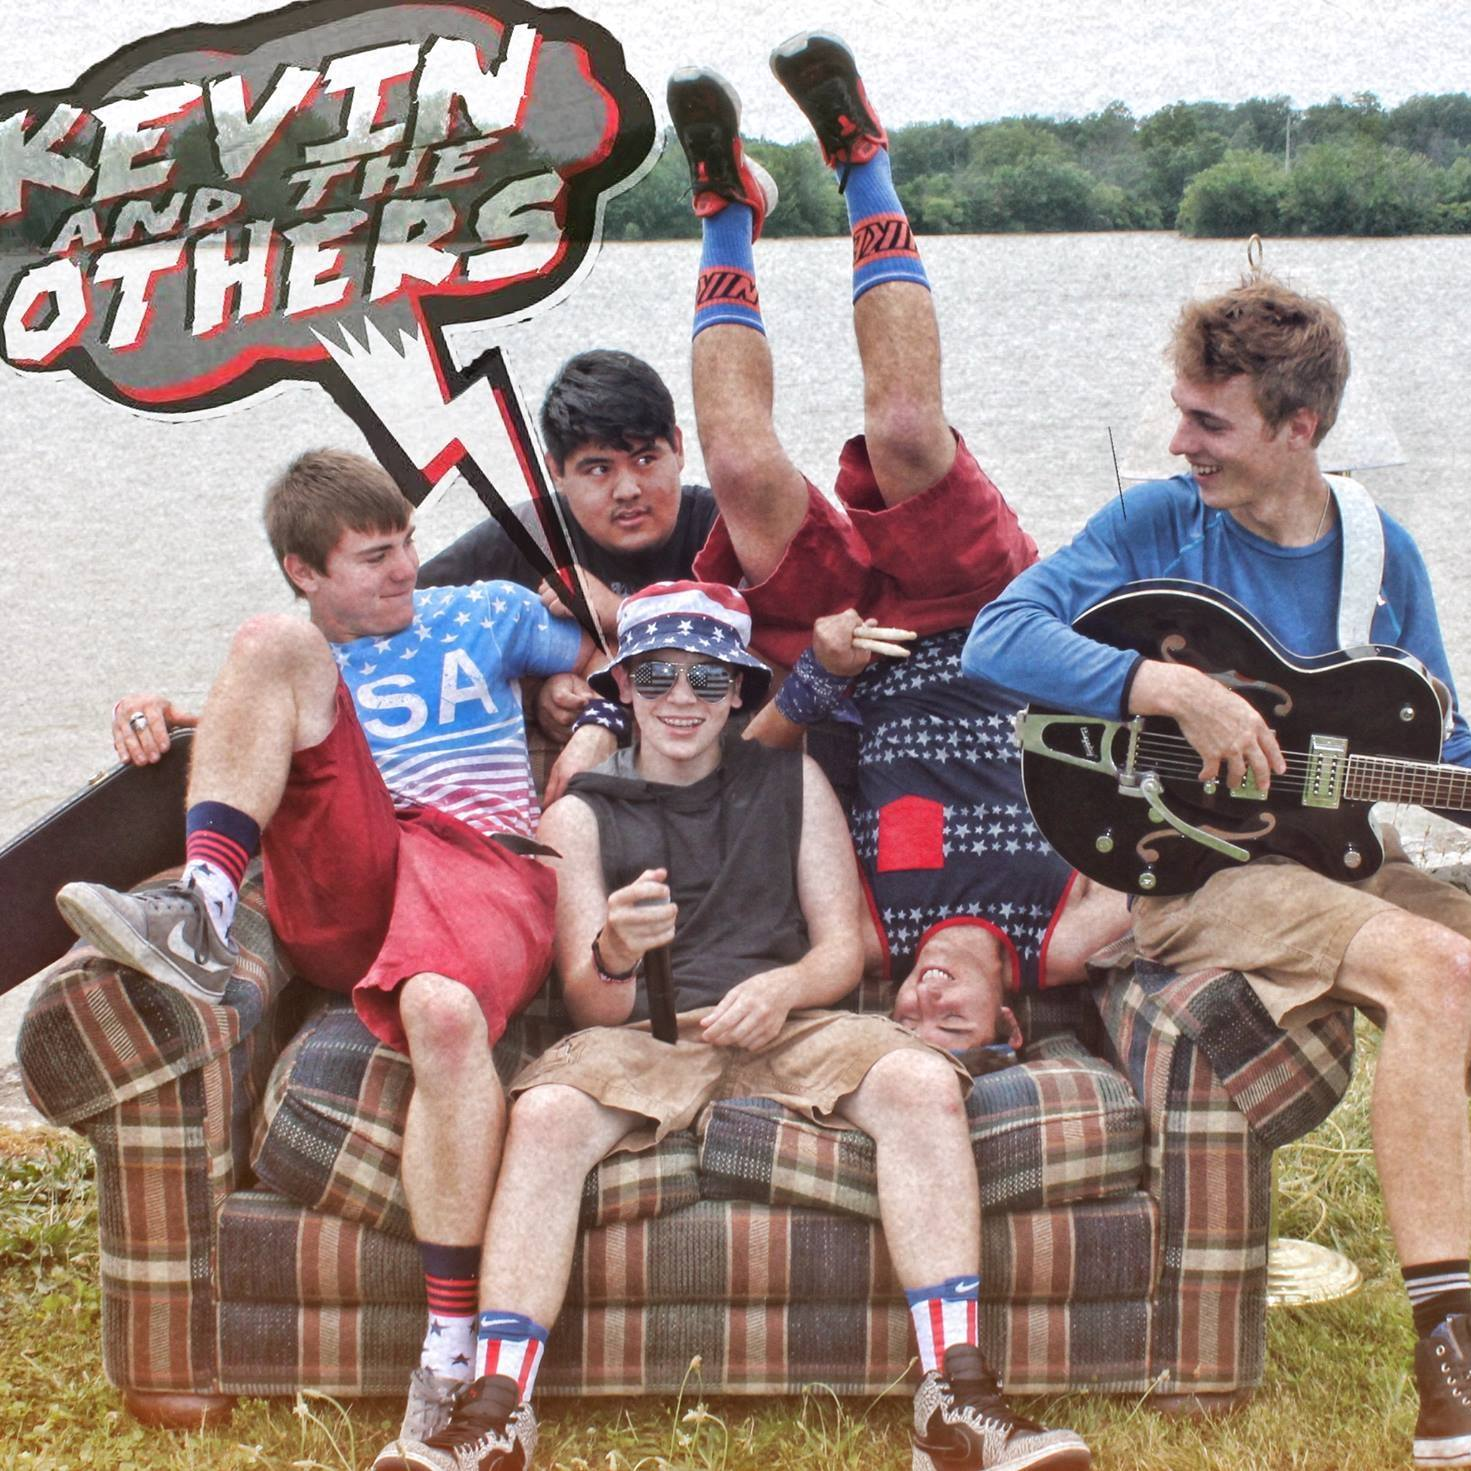 Kevin and the Others - 2:00pm-3:30pm